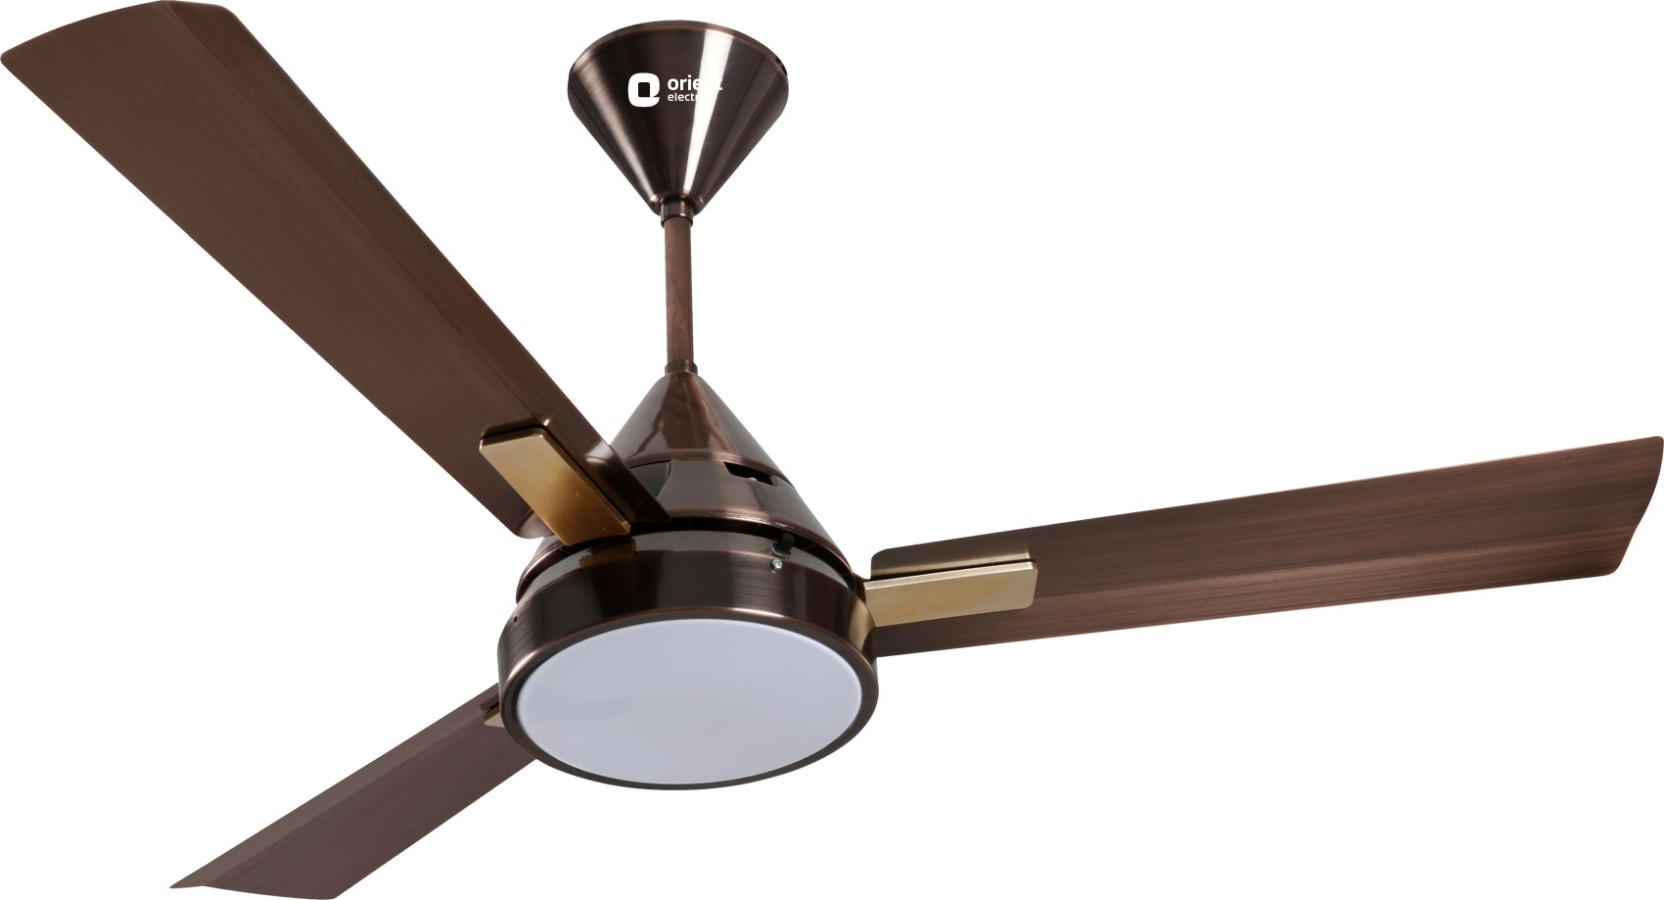 Orient Spectra Led Fan With Remote 3 Blade Ceiling Fan